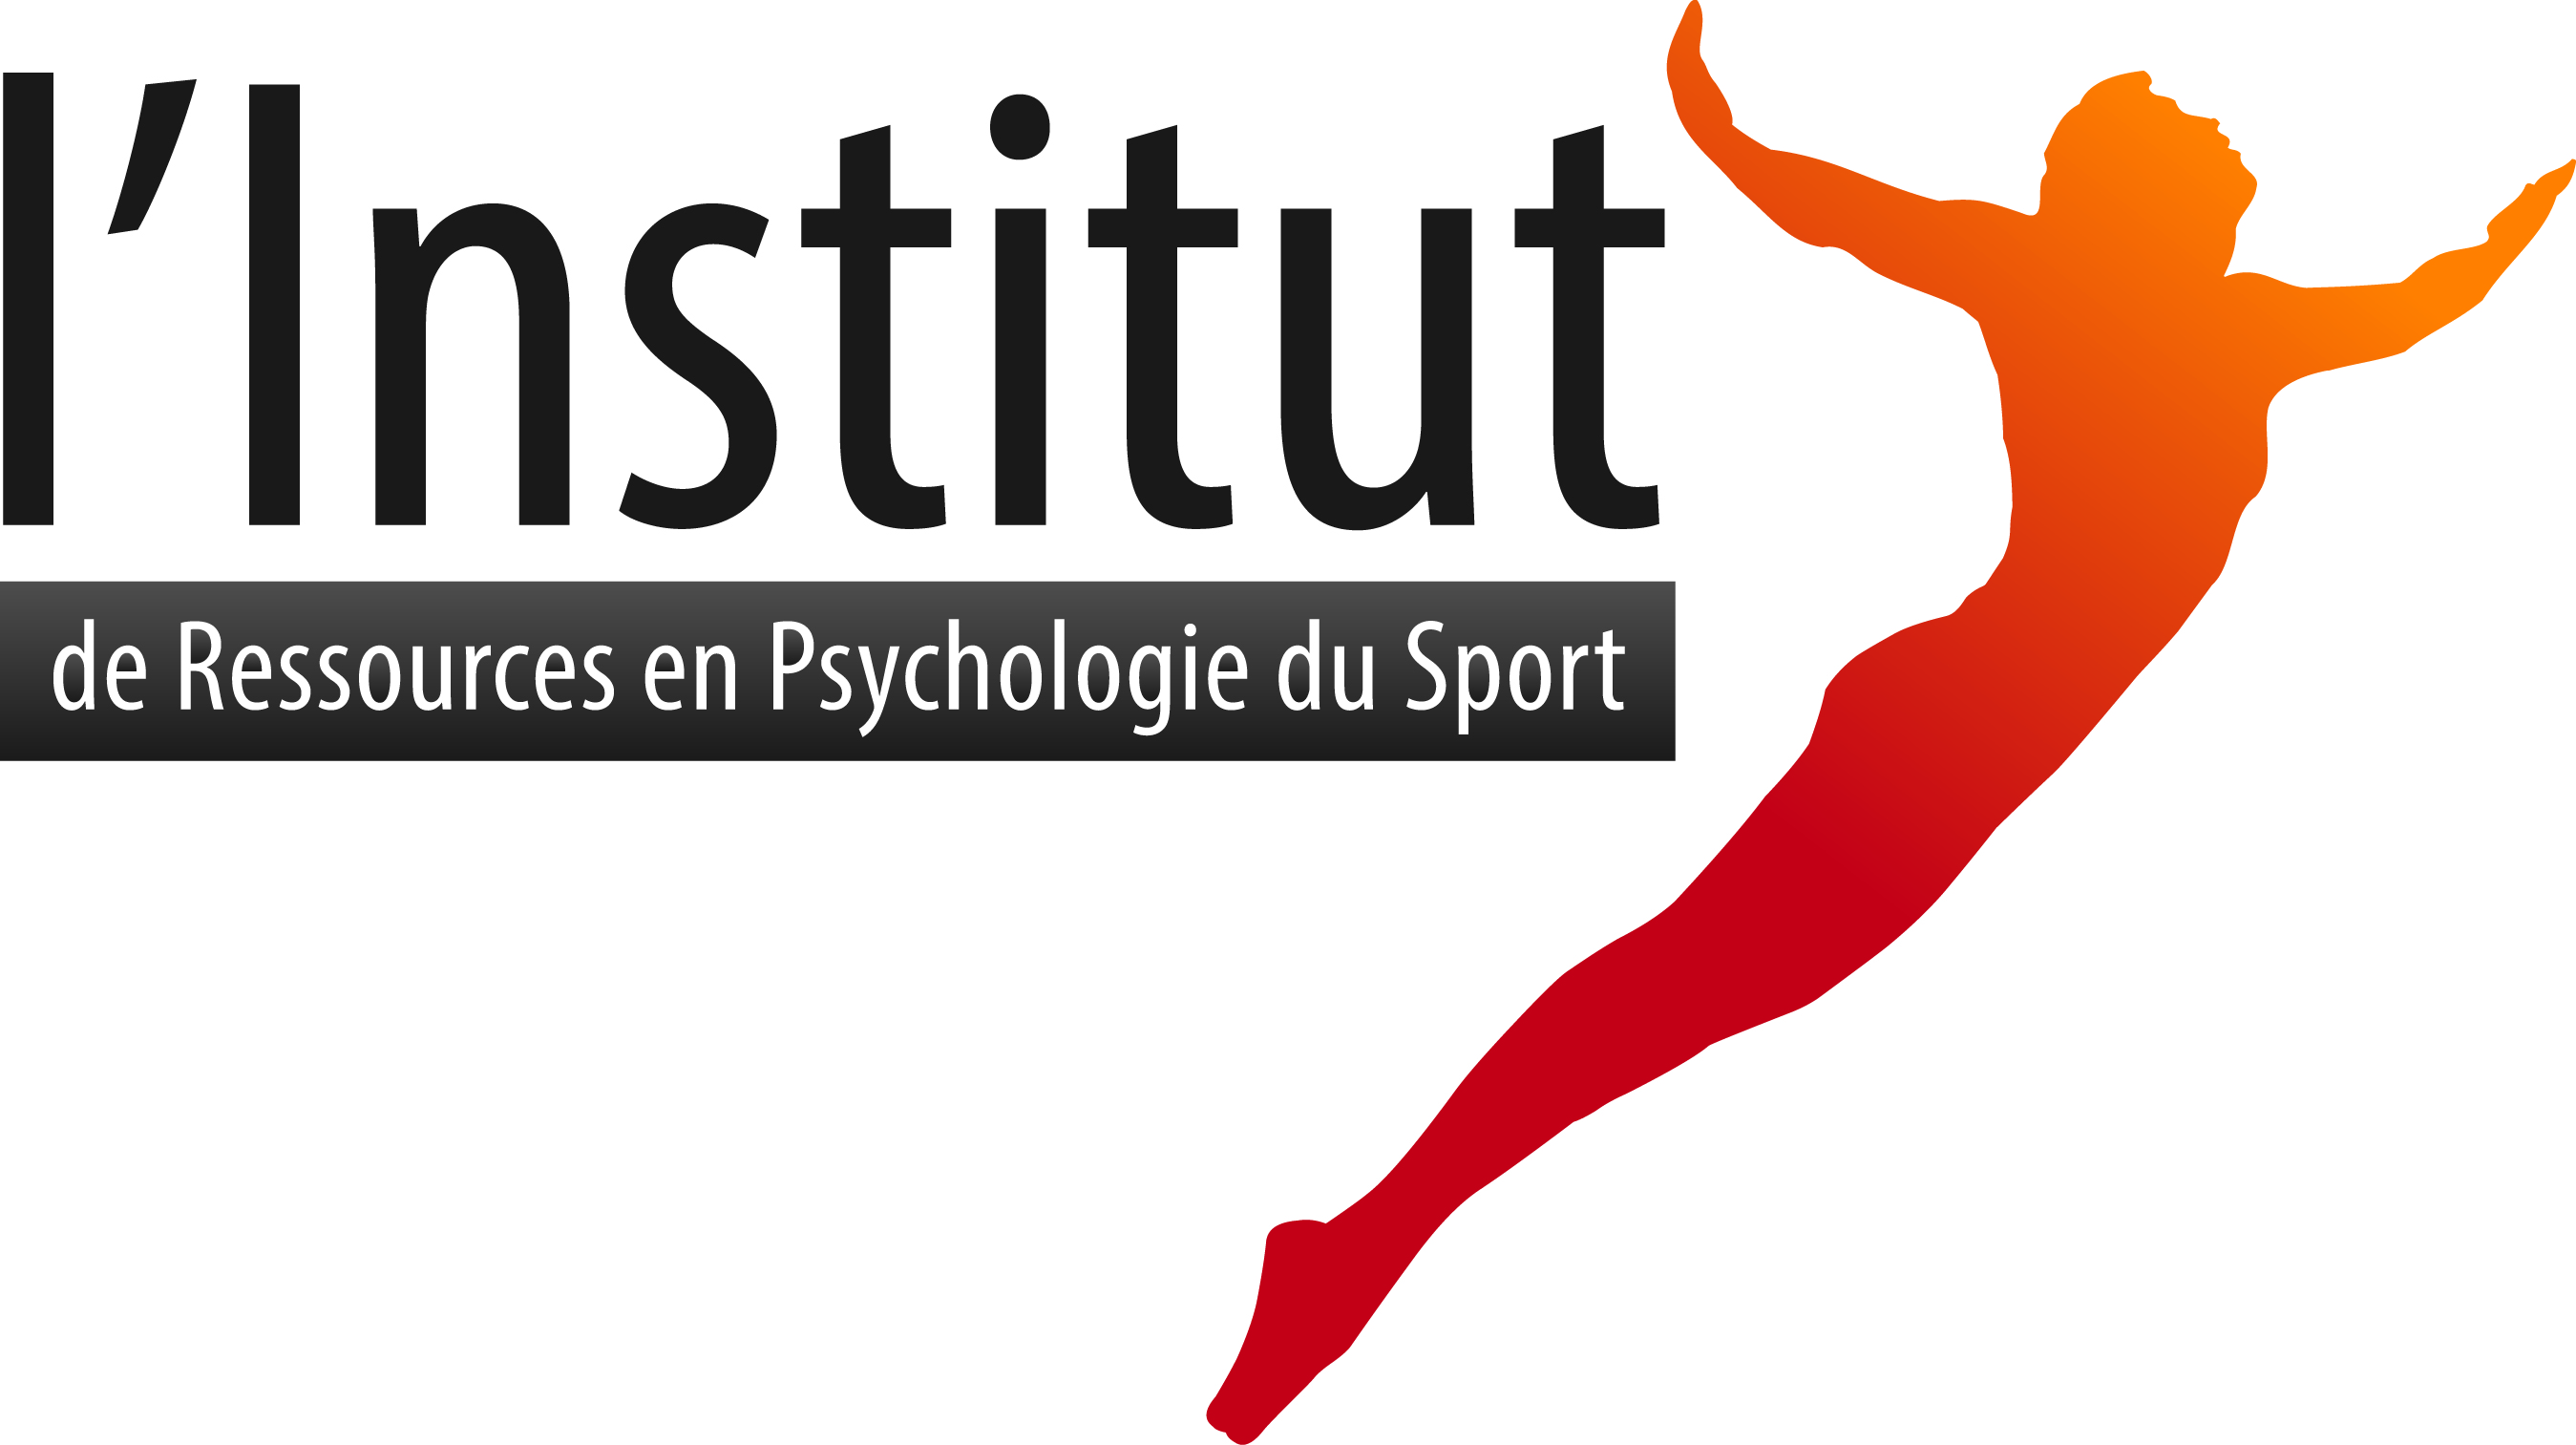 Sant maison des adolescents for Ecriture en miroir psychologie